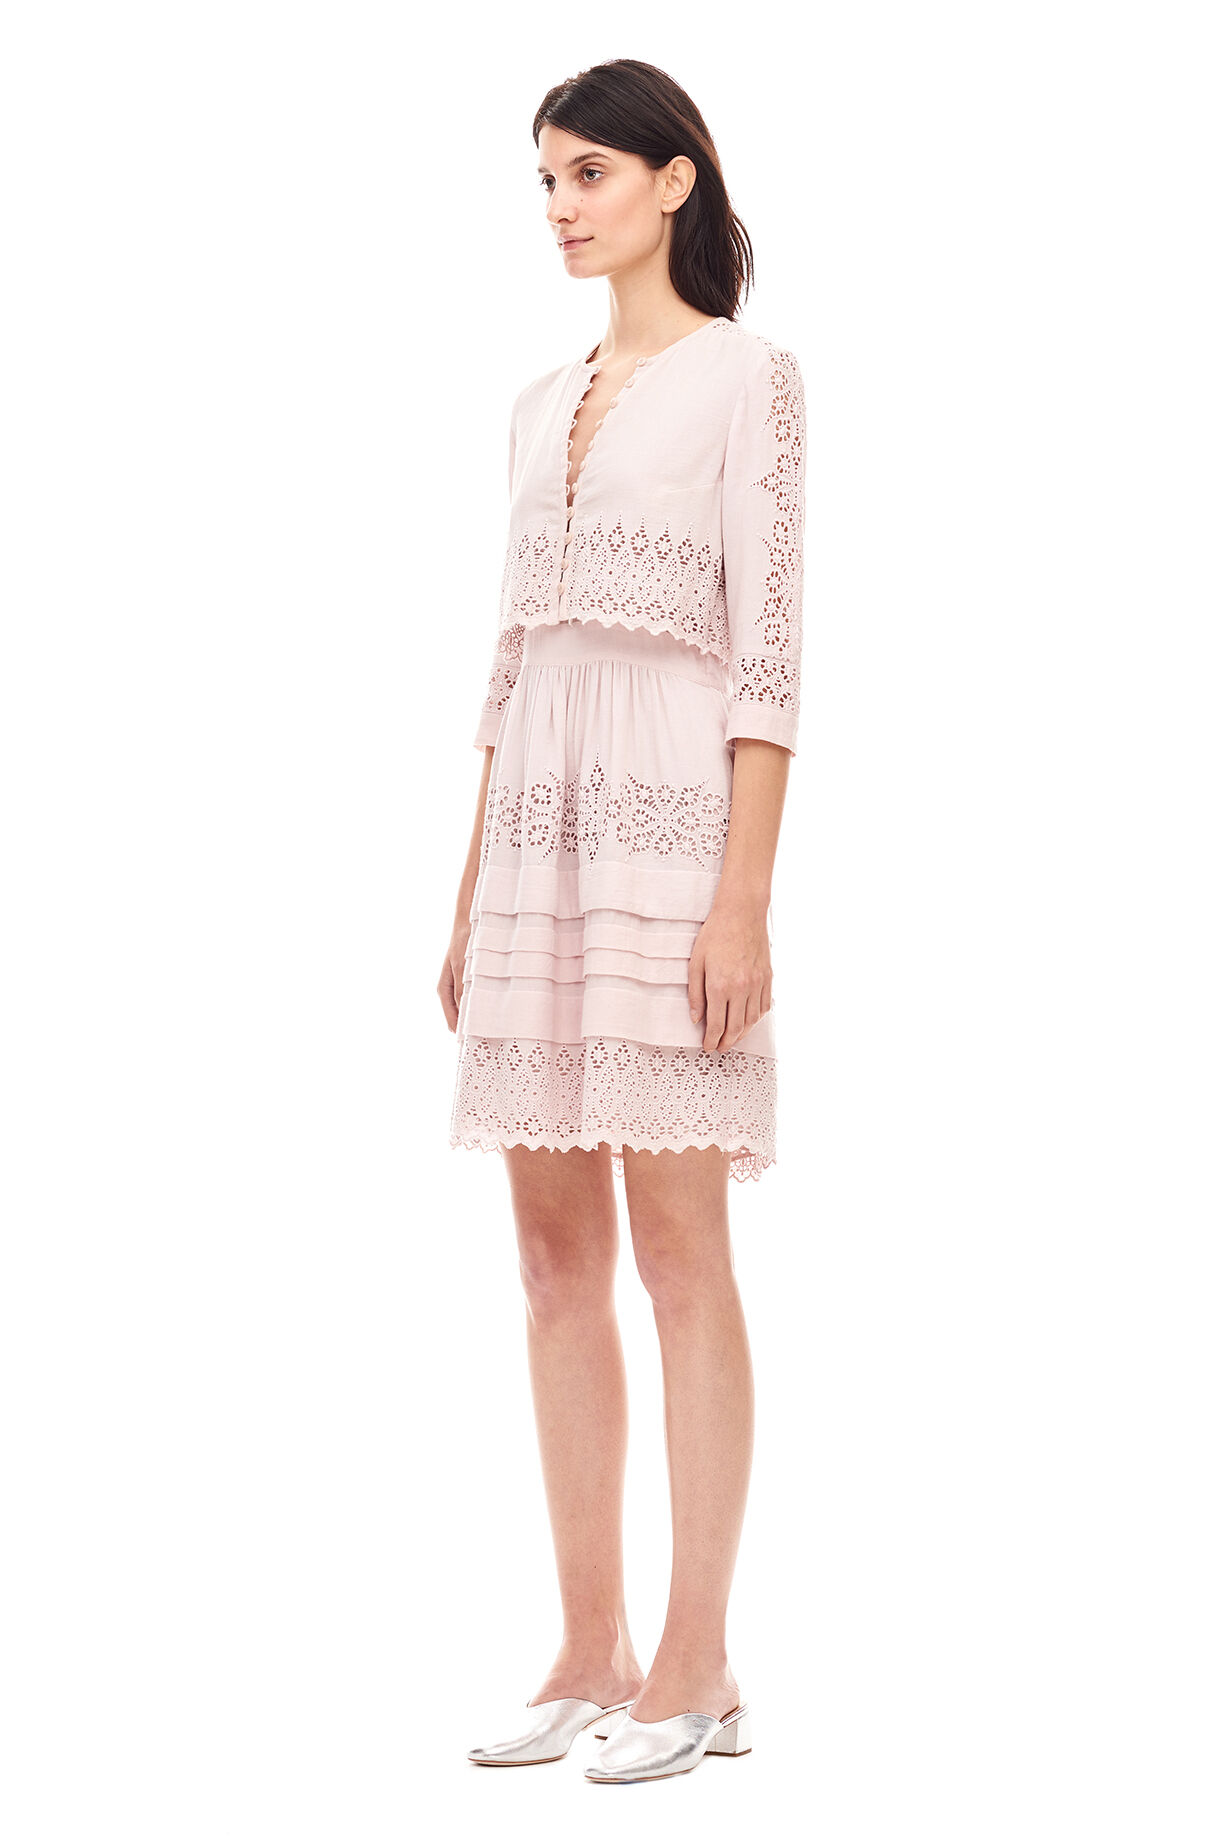 rebecca taylor dress white